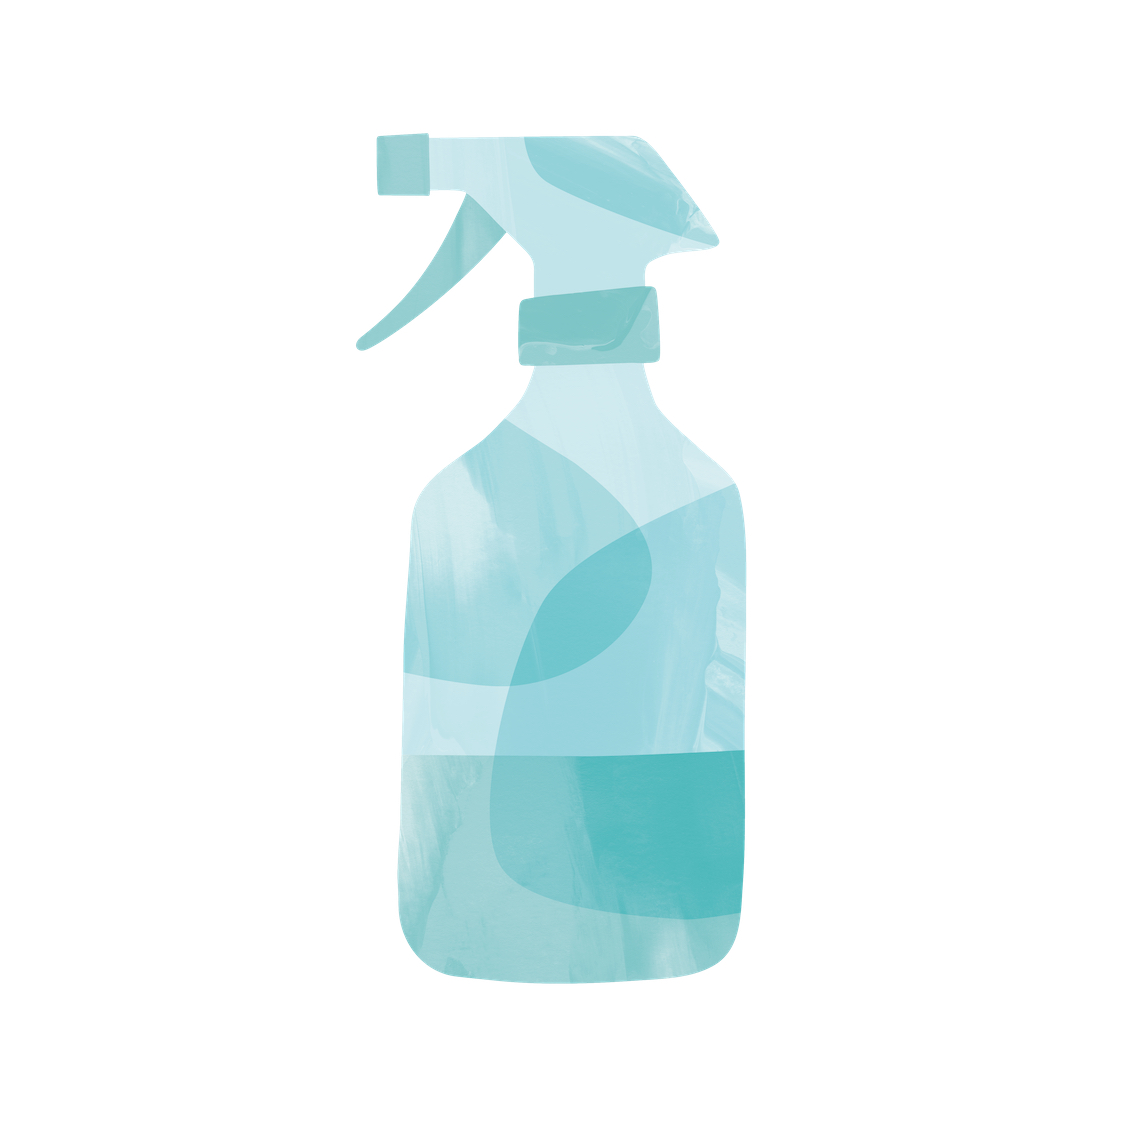 Blue spray bottle illustration